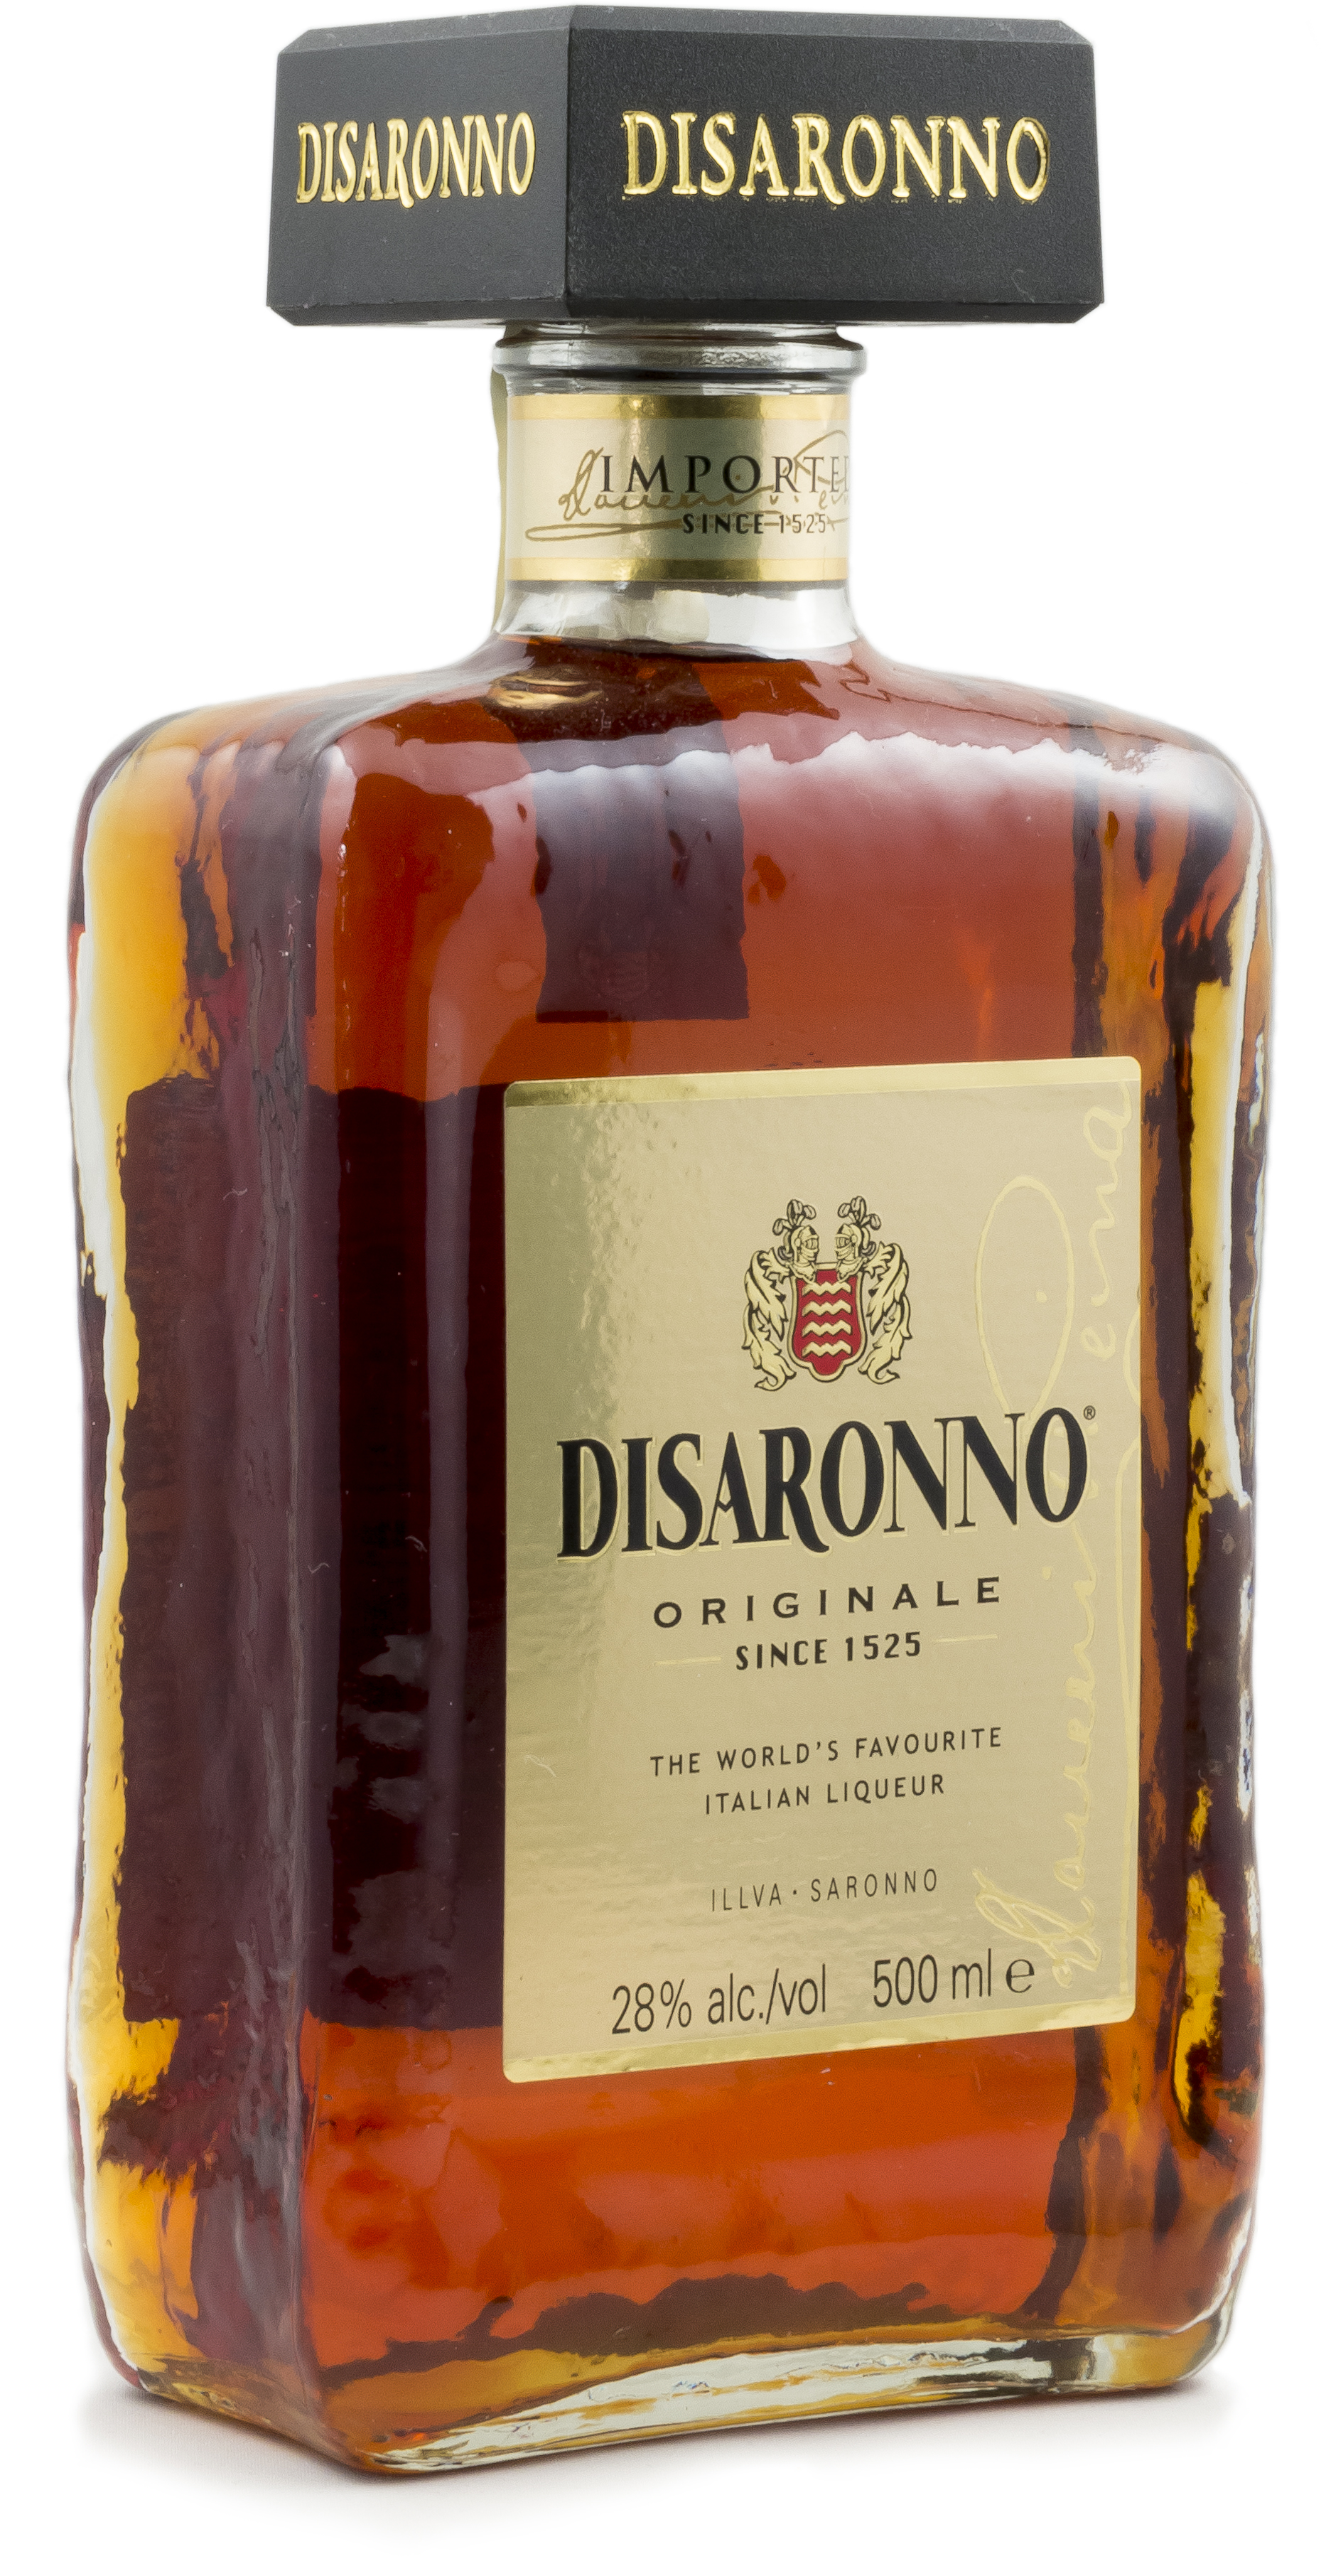 amaretto it doesnt have to be disaranno paul rigby